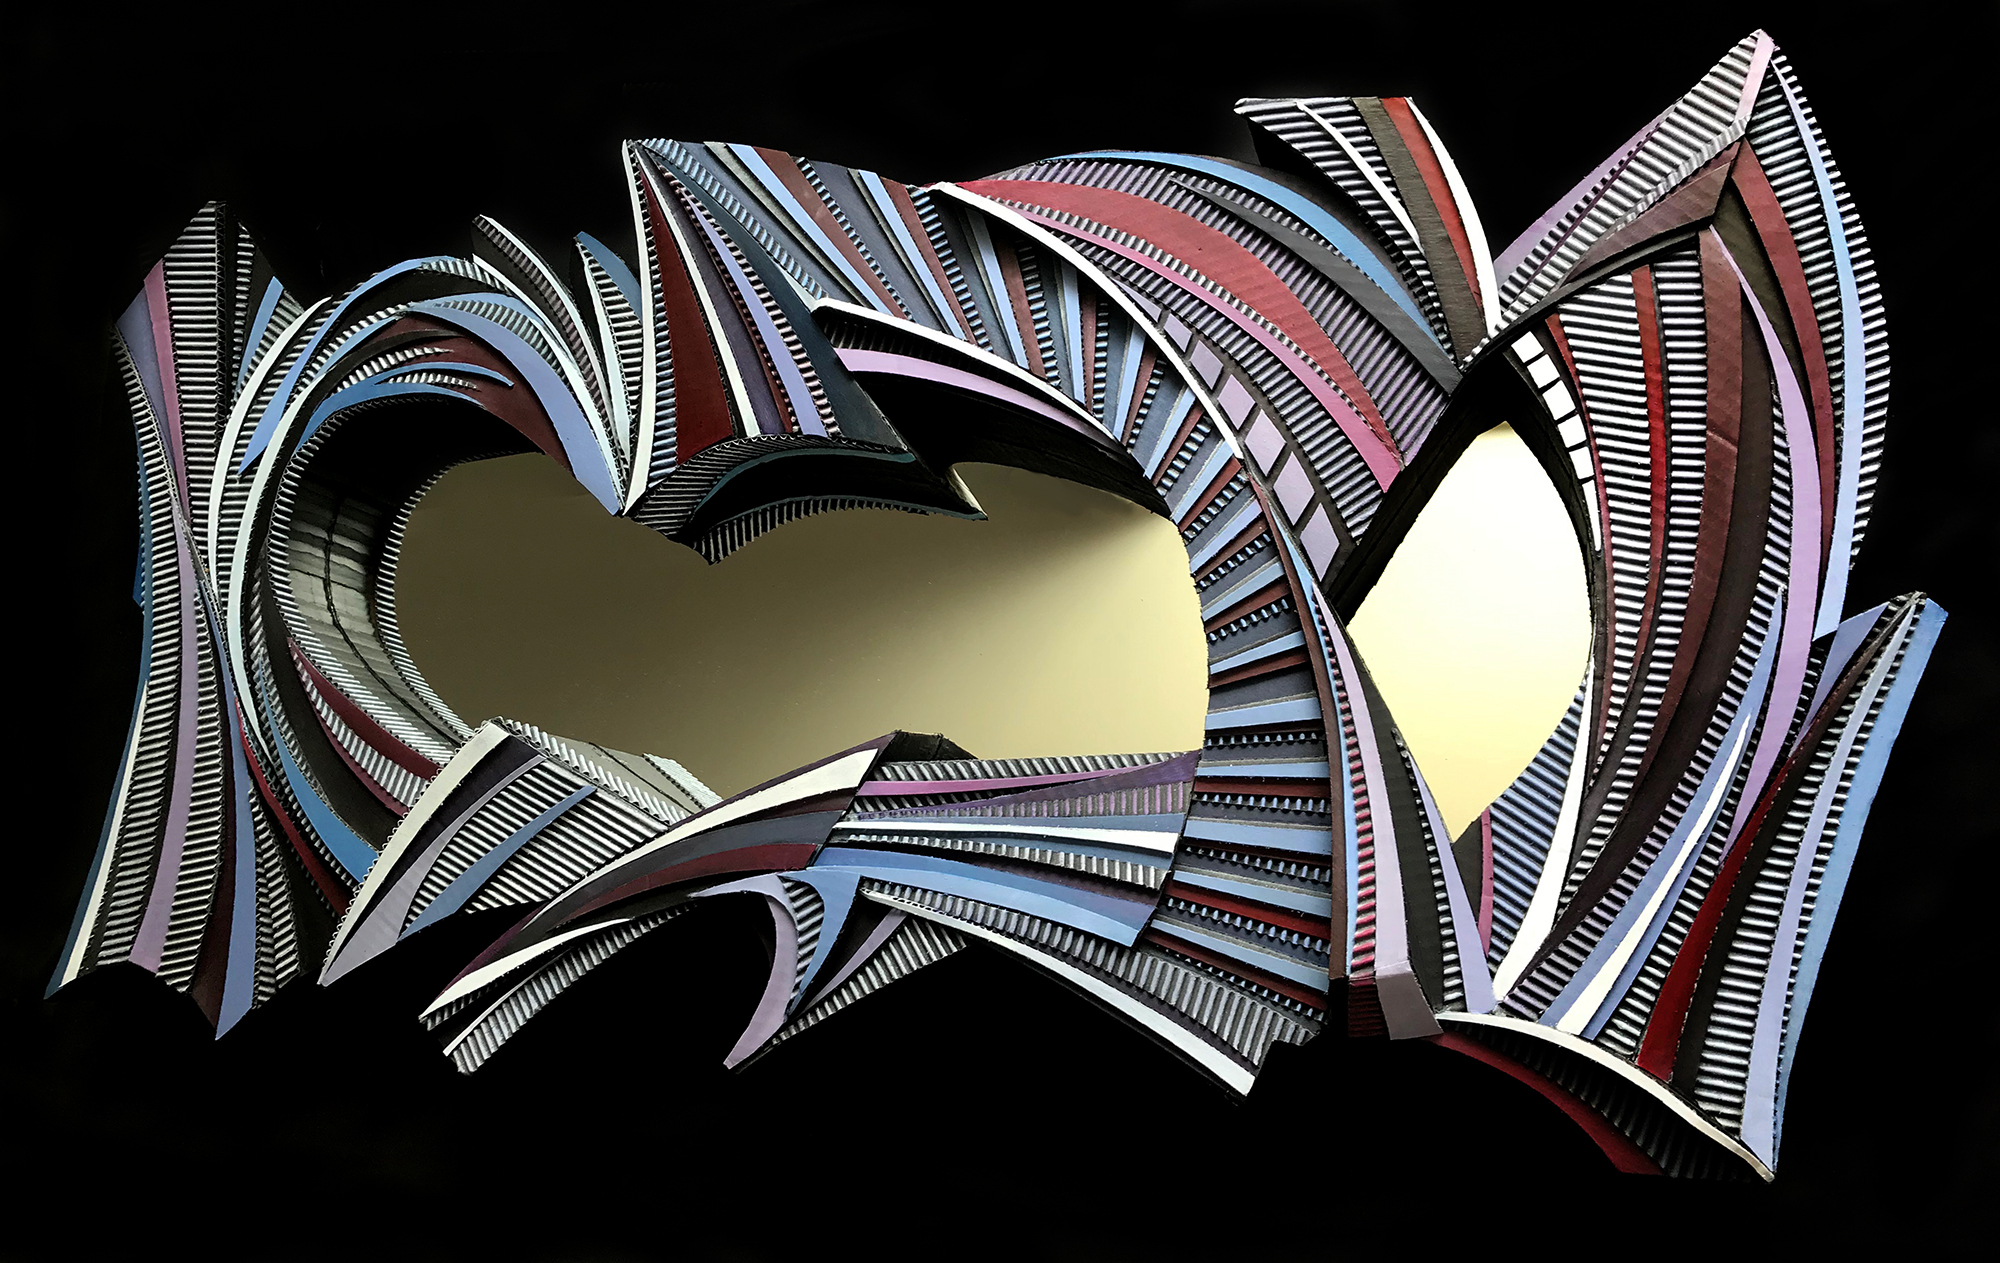 SCULPTURAL REFLECTION (RIGHT VIEW)